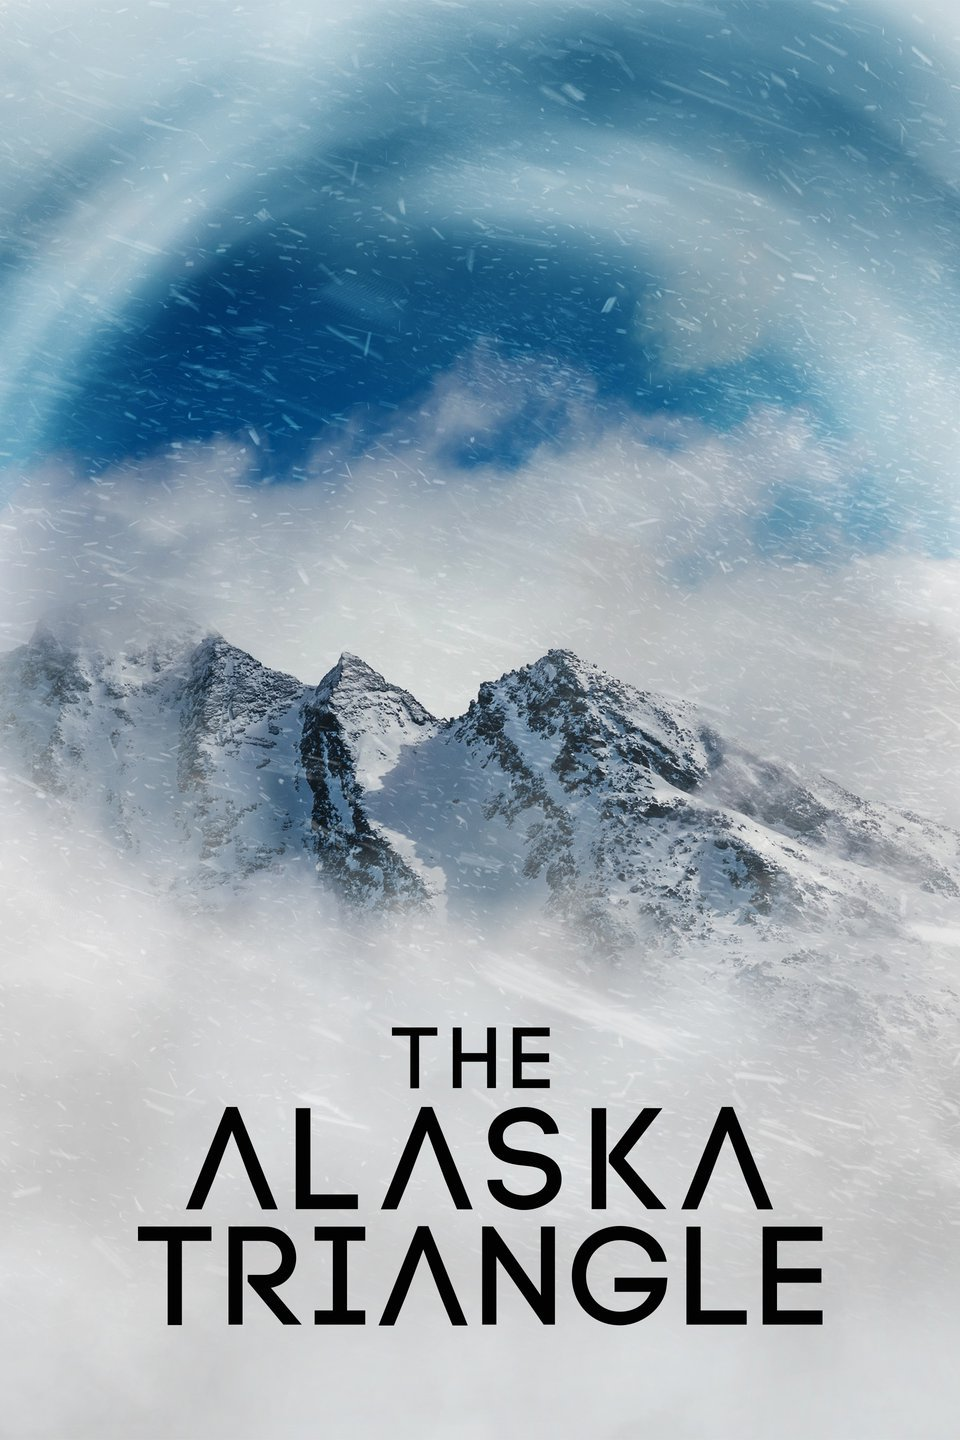 The Alaska Triangle S01 Ep 1